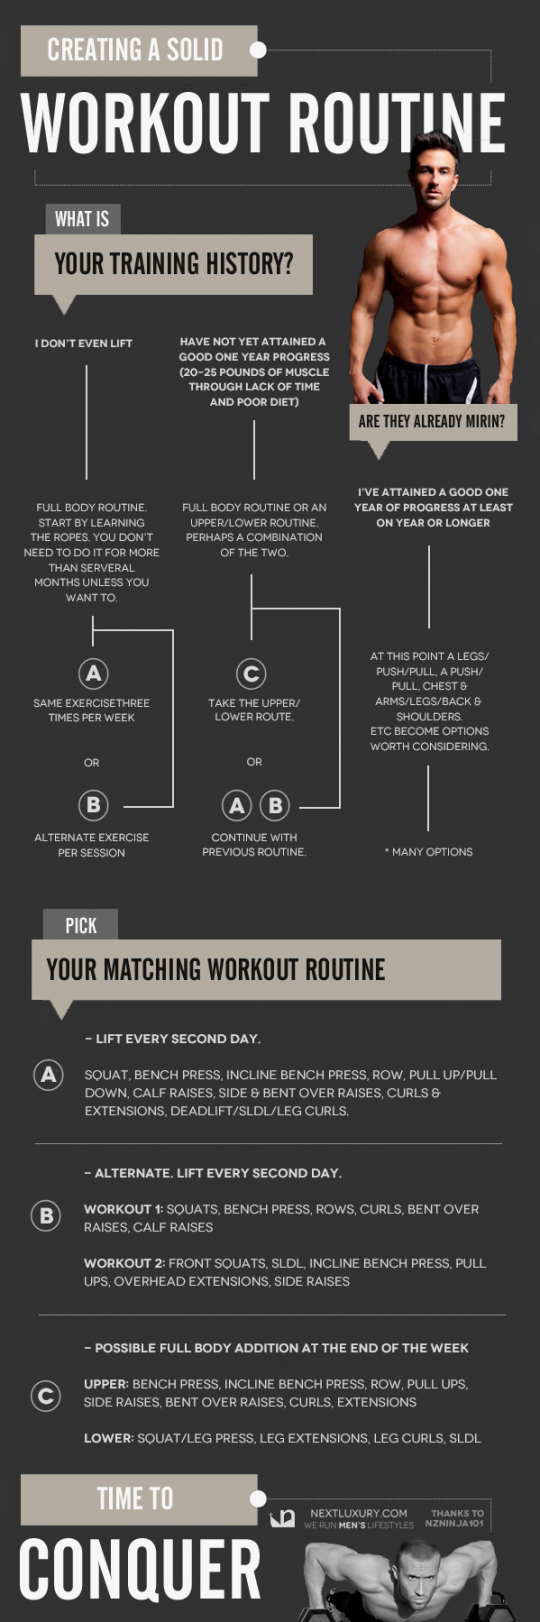 Creating A Solid Workout Routine For Men